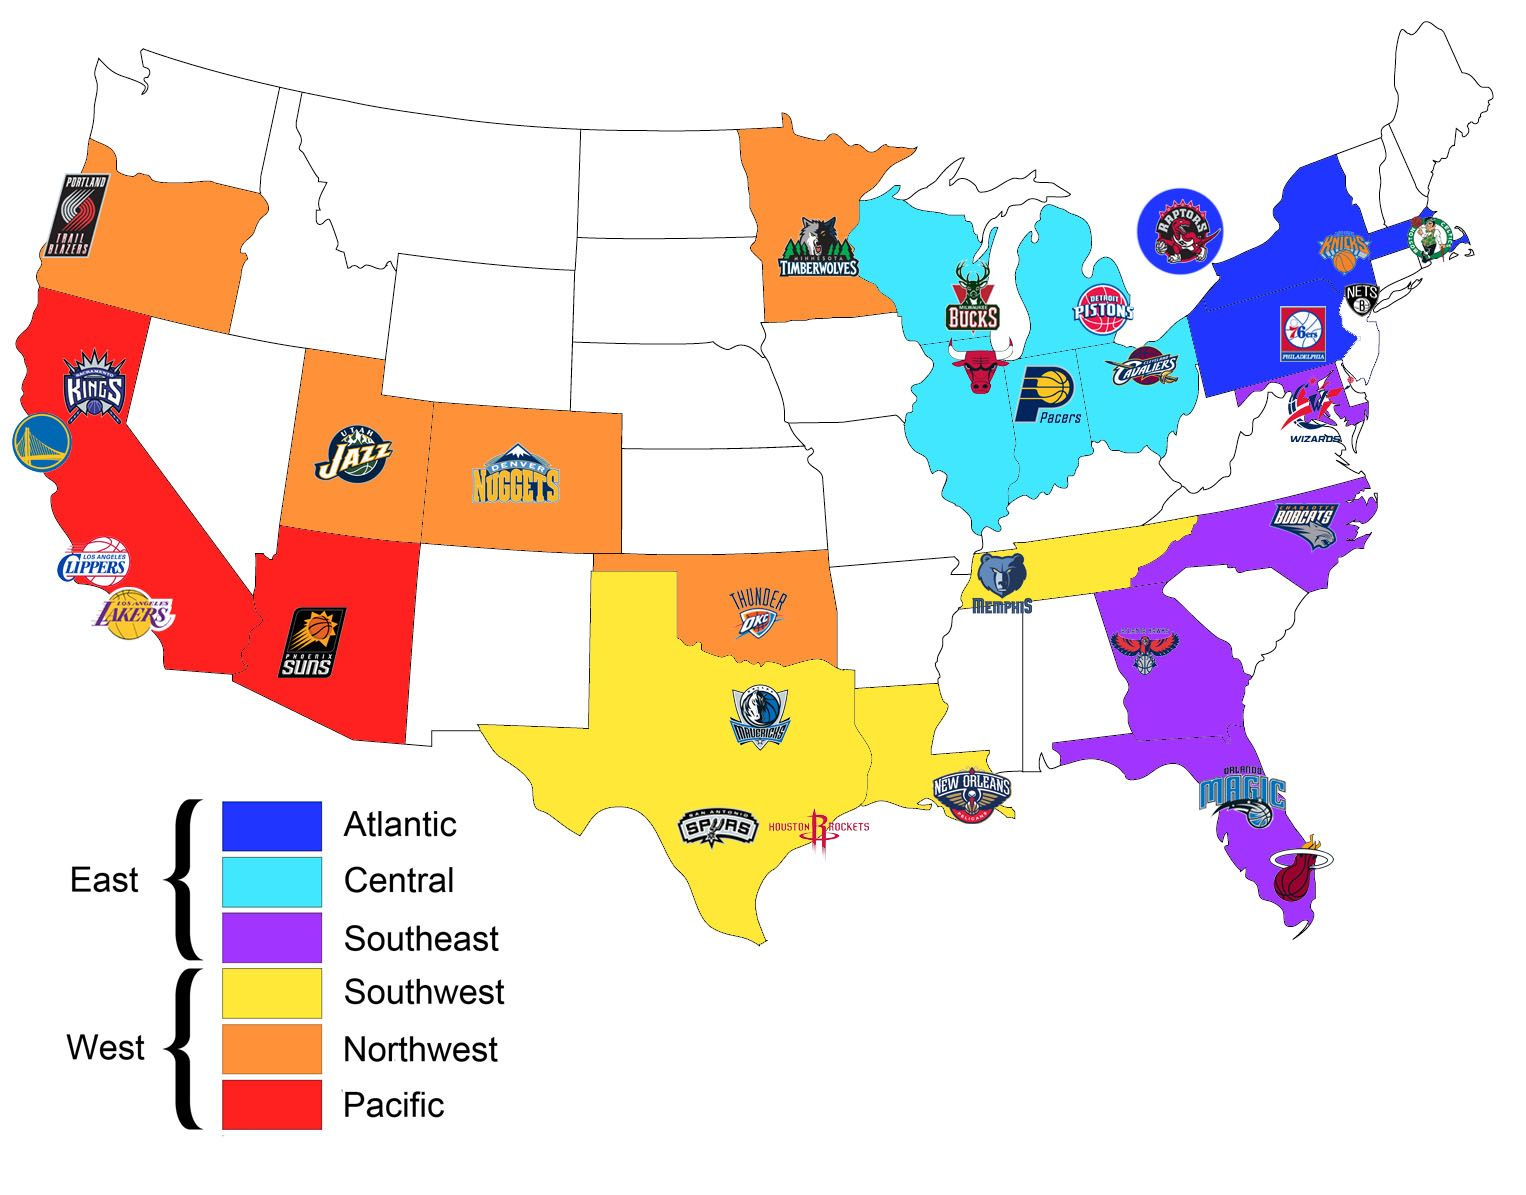 Nba Map | My Blog | NBA | Nba, Sports, Map Nba States Map on mls states map, conservative states map, escrow states map, republican states map, great lakes states map, nhl states map, union states map, italy states map, eastern us states map, mlb states map, football states map, fill in states map, nfl states map, the us states map, sec states map, germany states map, blankunited states map, empty states map, right to work states map, 3.2 beer states map,